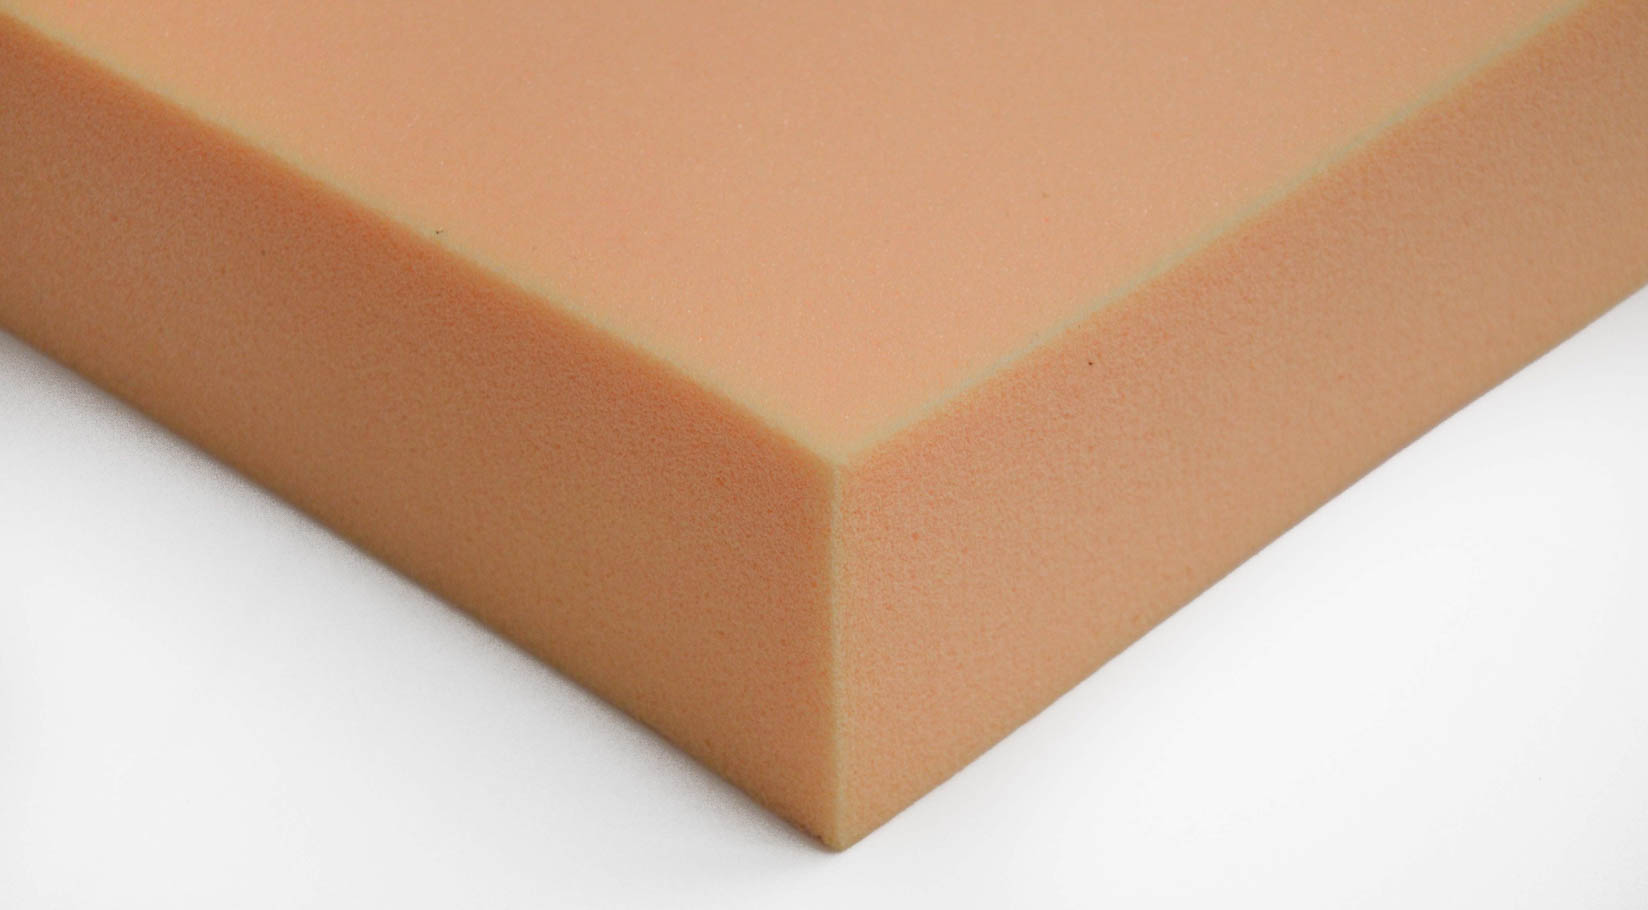 High Density Upholstery Foam | Types of Upholstery Foam | High Density Foam Upholstery